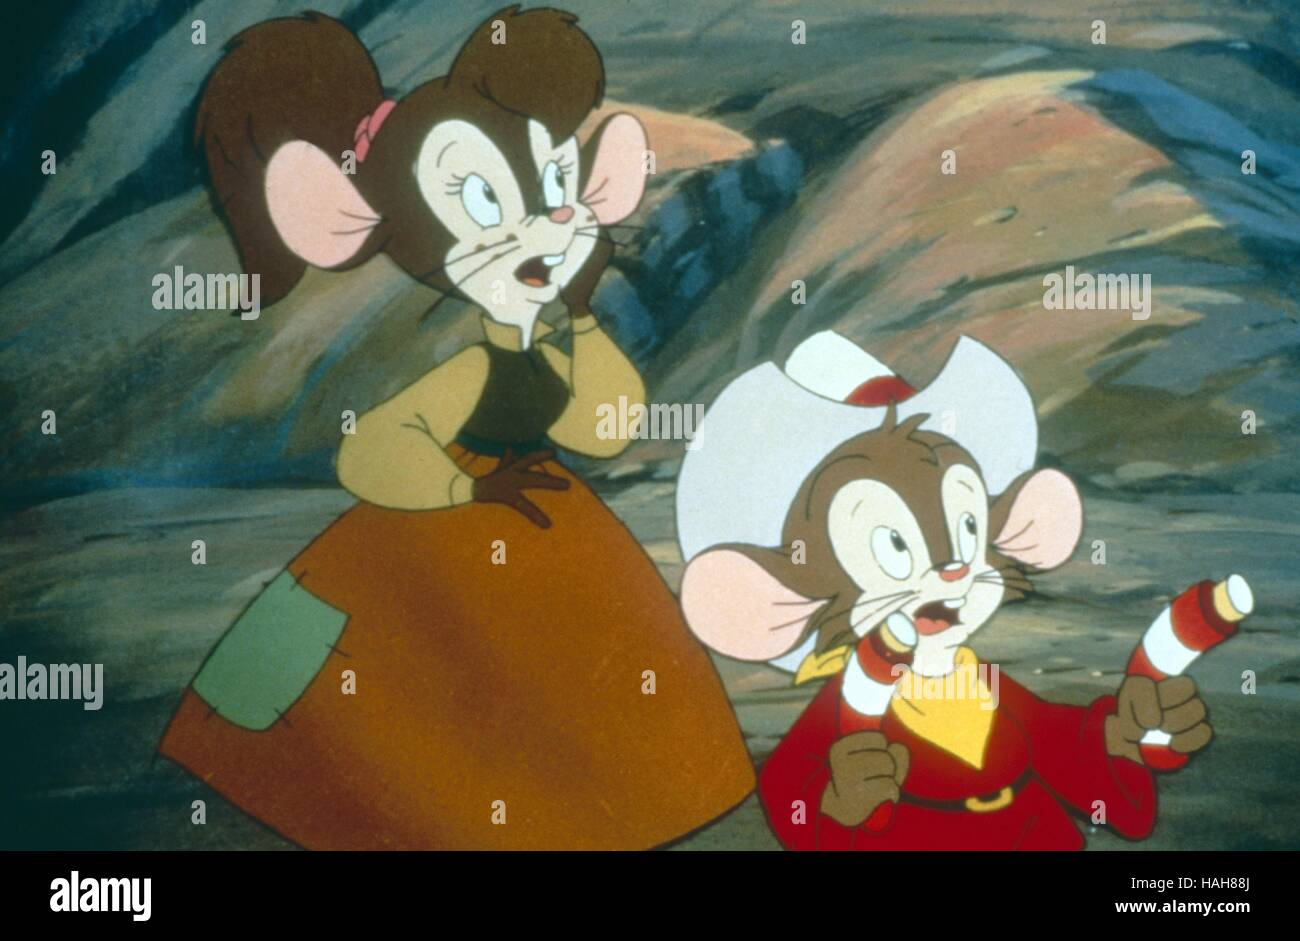 Un American Tail: Fievel Goes West EE.UU. Año: 1991 Director: Phil Nibbelink Simon Wells Animación Imagen De Stock